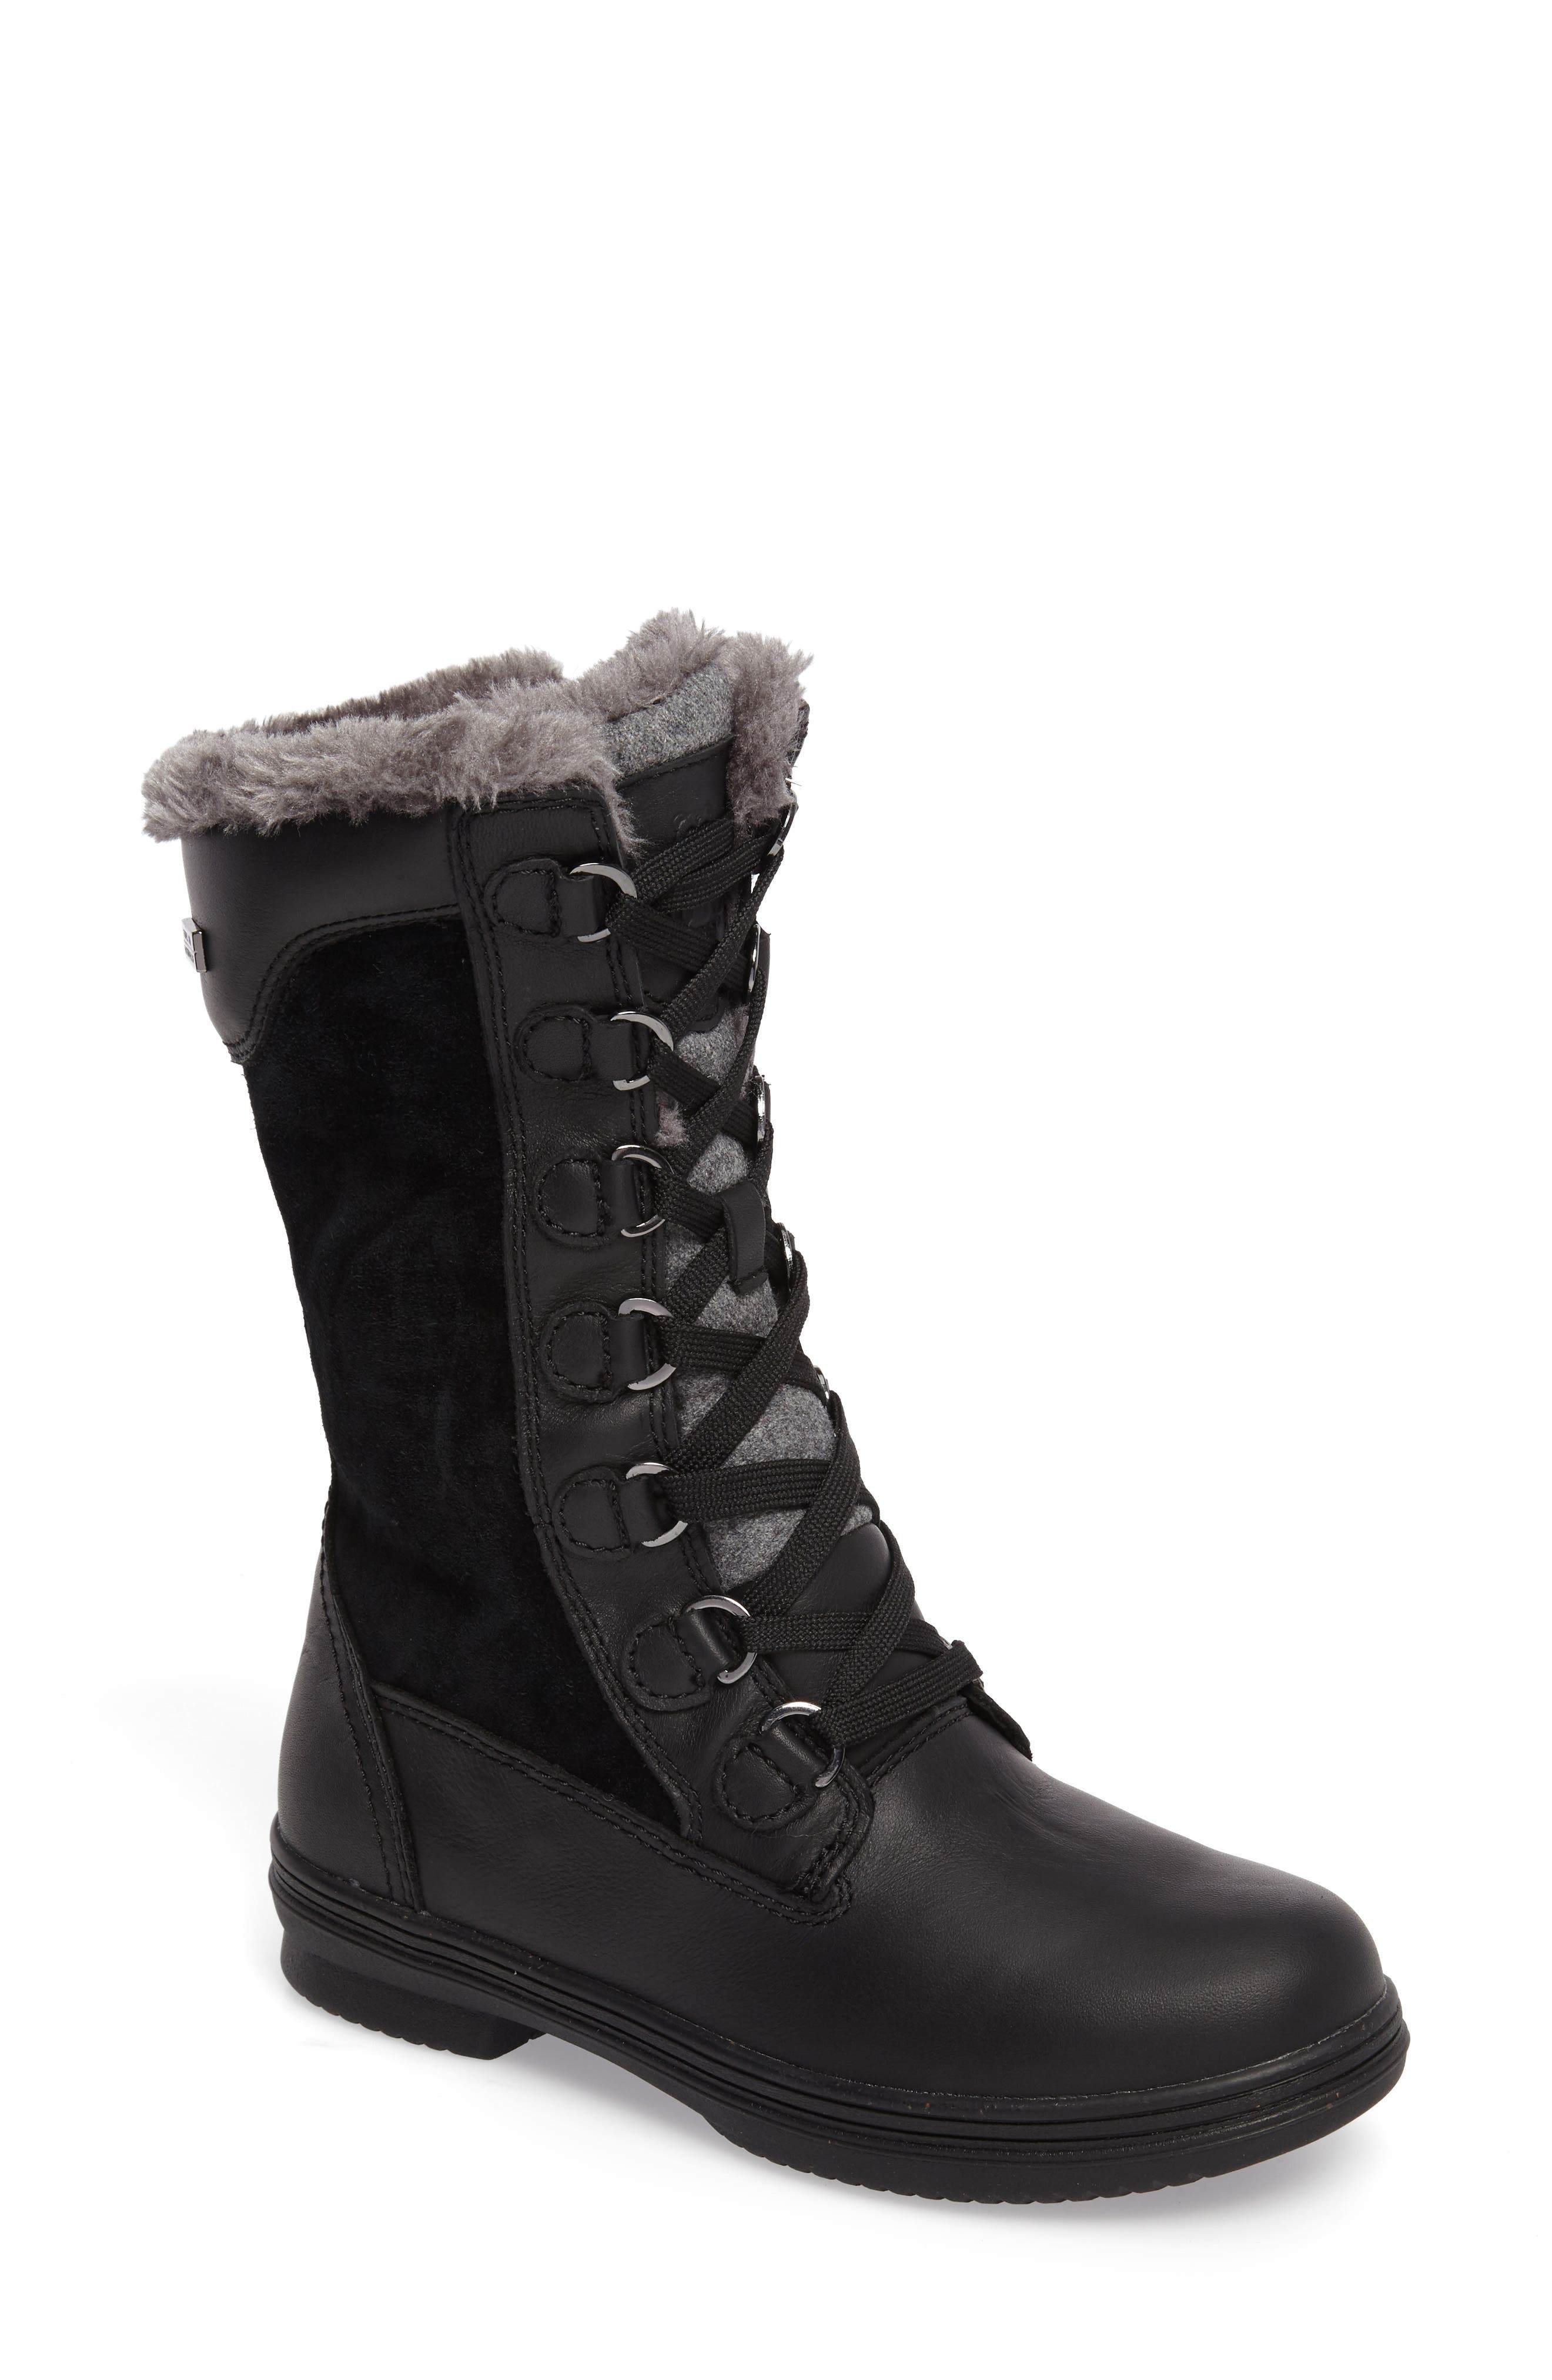 Alternate Image 1 Selected - Kodiak Glata Waterproof Boot (Women)